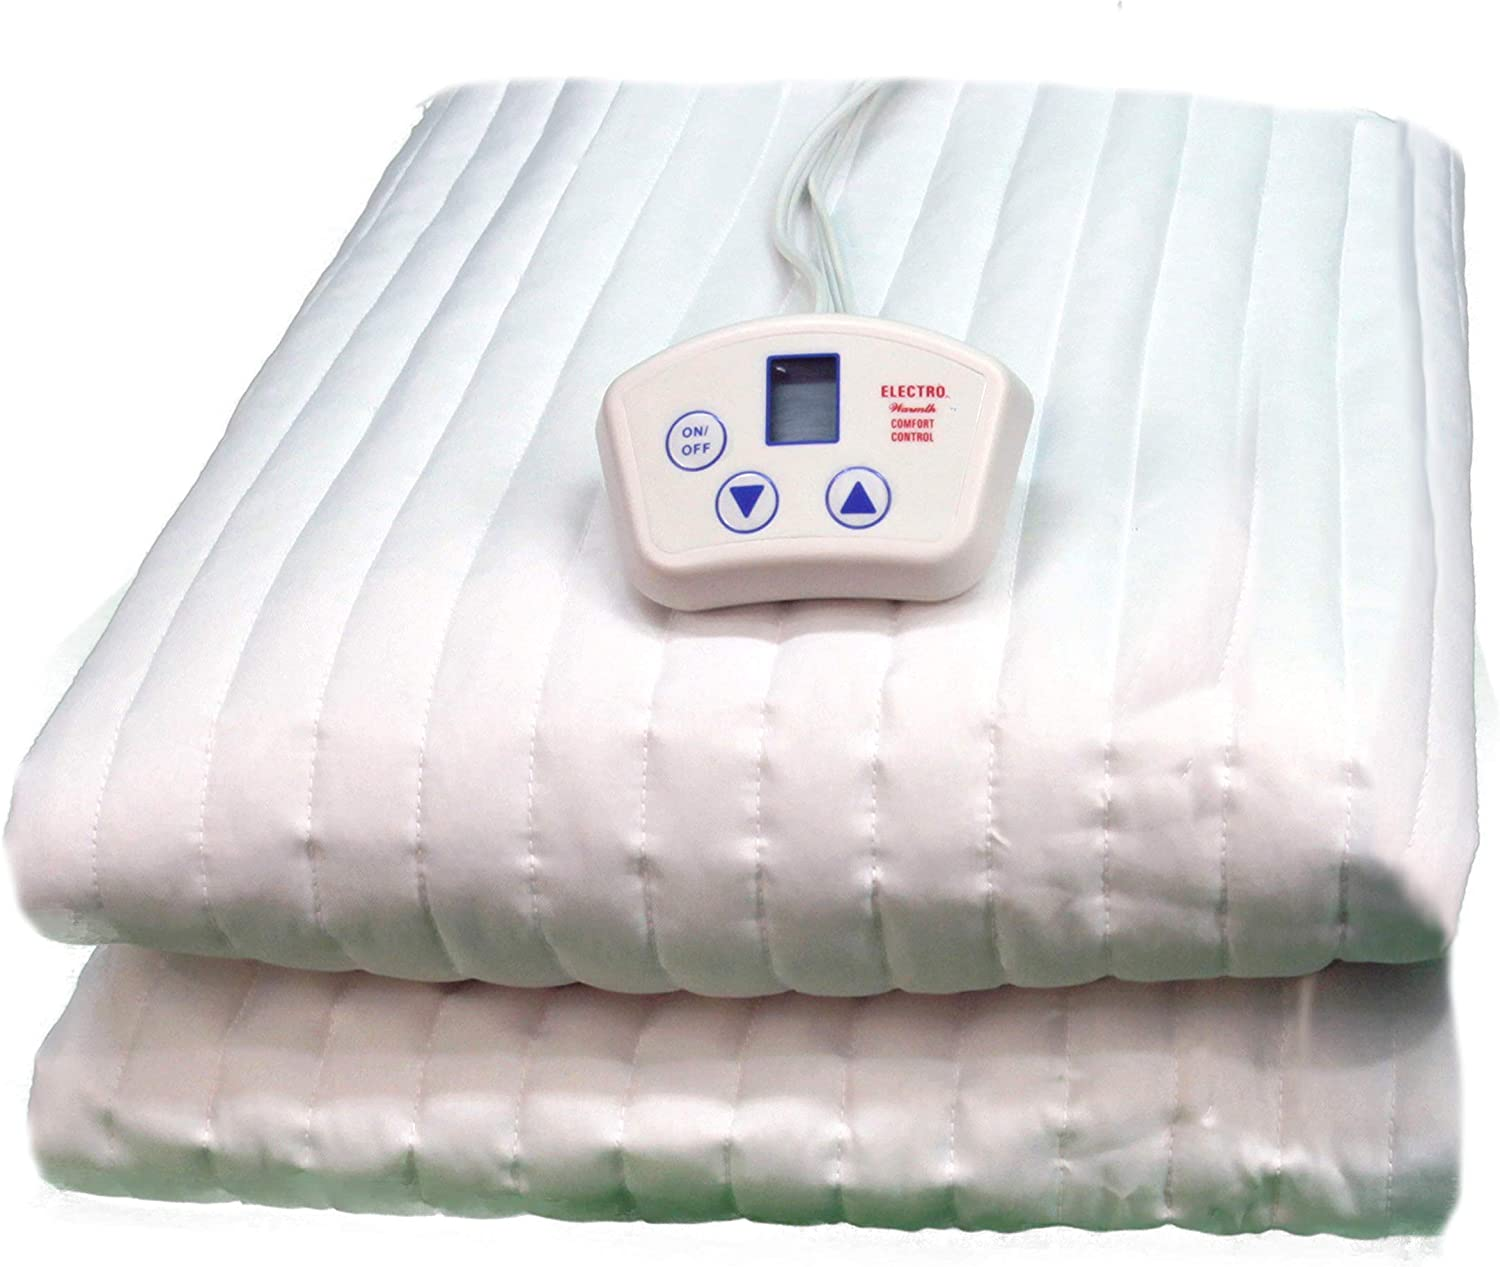 Electrowarmth M54Fd Double Full Two Controls Heated Mattress Pad Renewed 54-Inch by 74-Inch